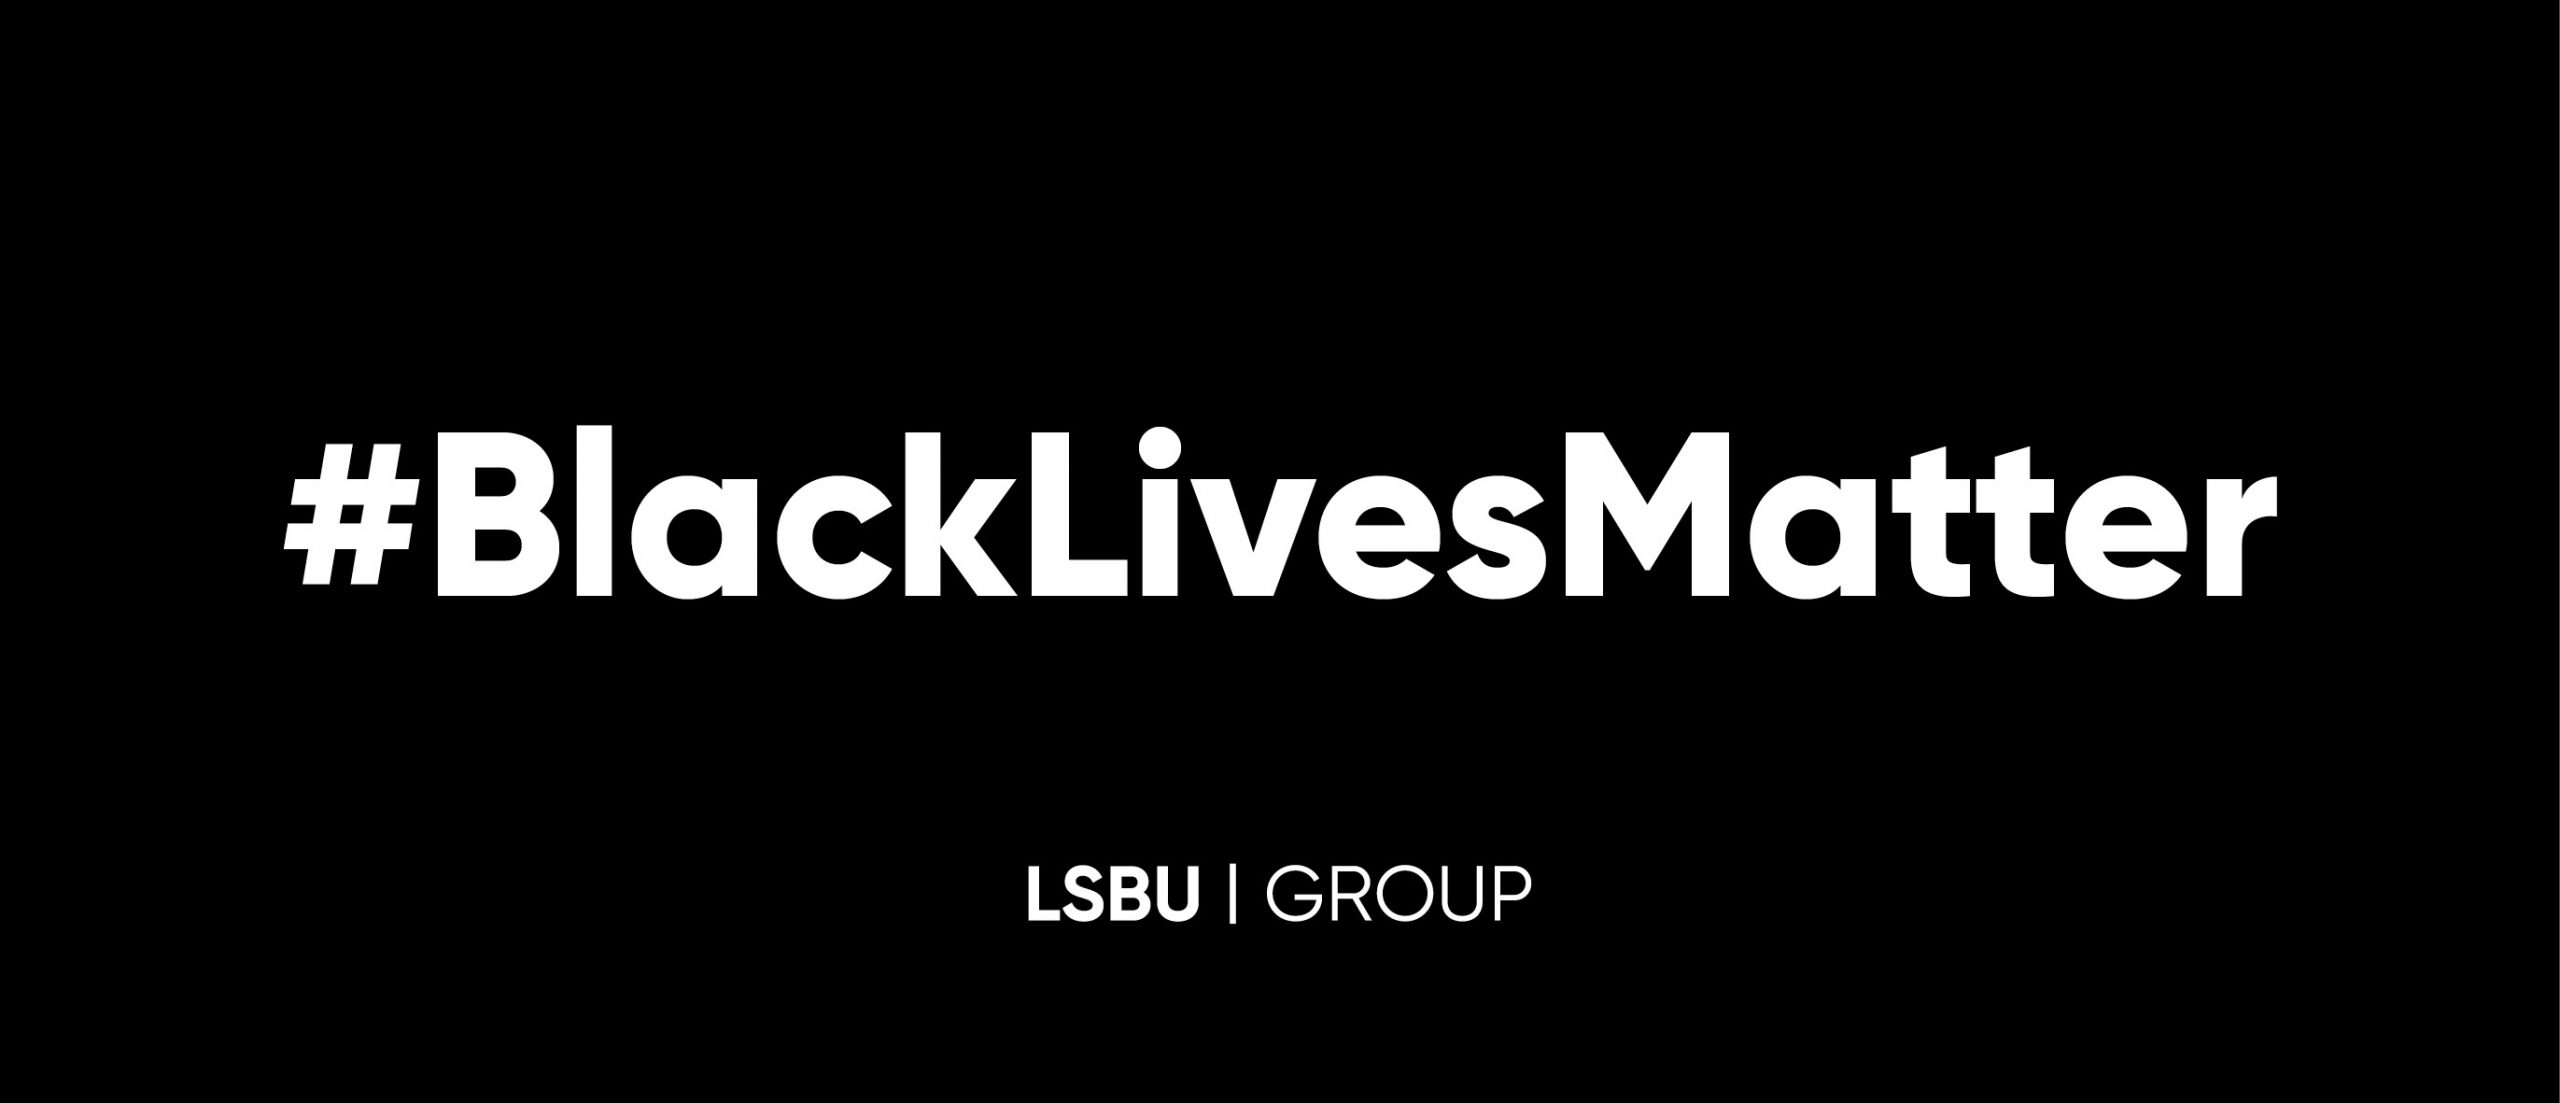 A message from the LSBU Group on Black Lives Matter